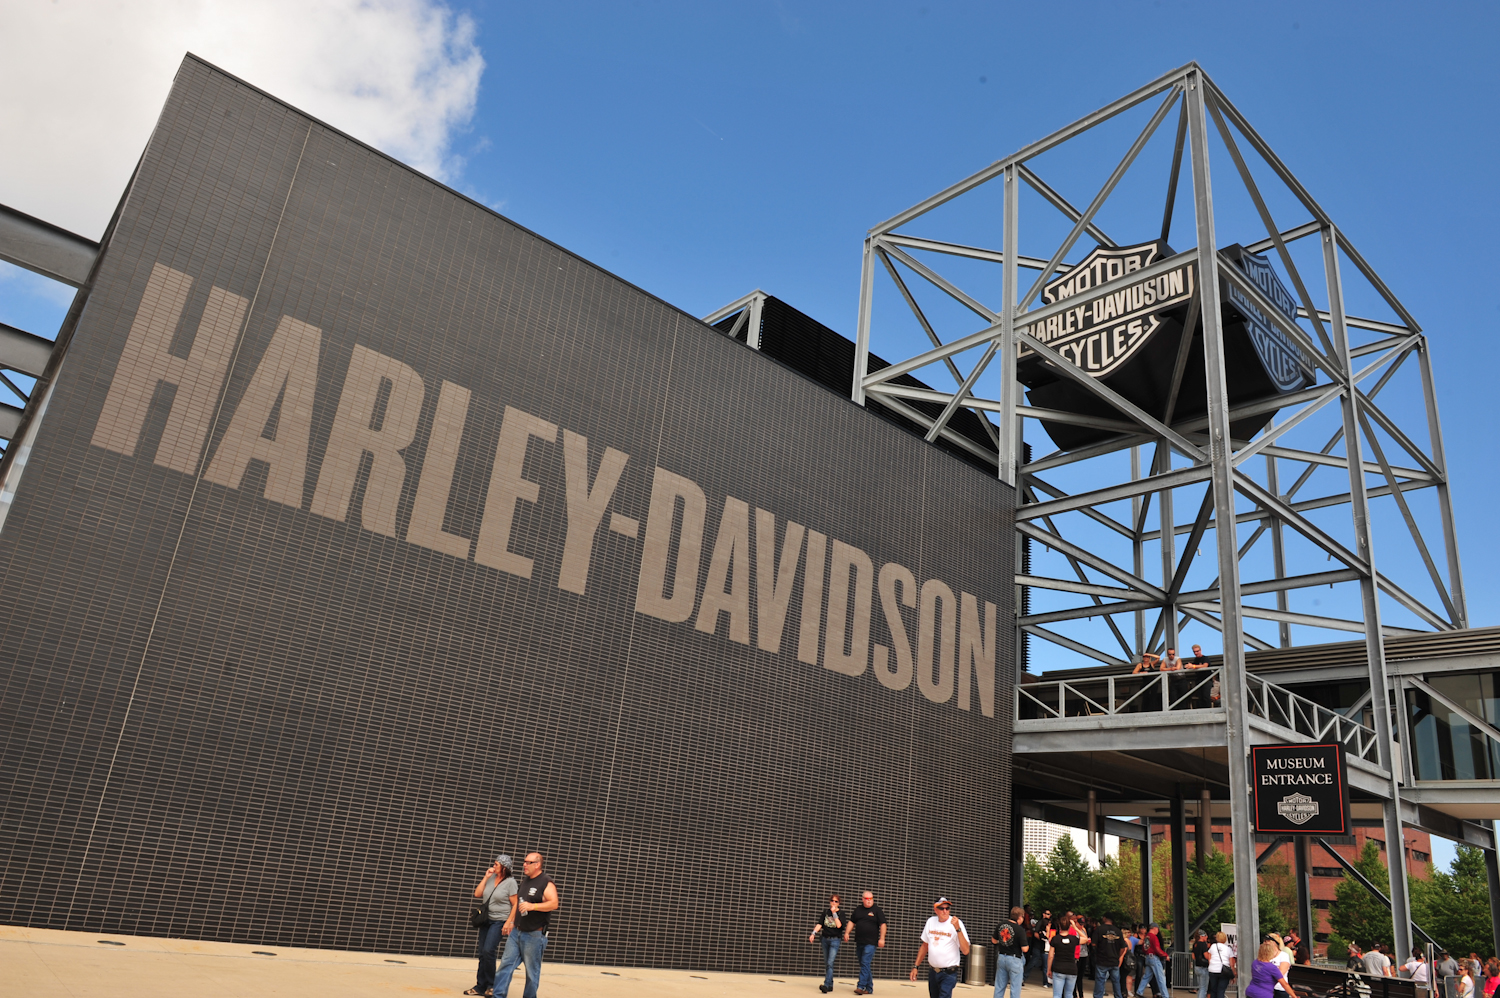 BANGO VISITS THE HARLEY-DAVIDSON MUSEUM® TO HELP BUILD A LEGO® MYSTERY MURAL